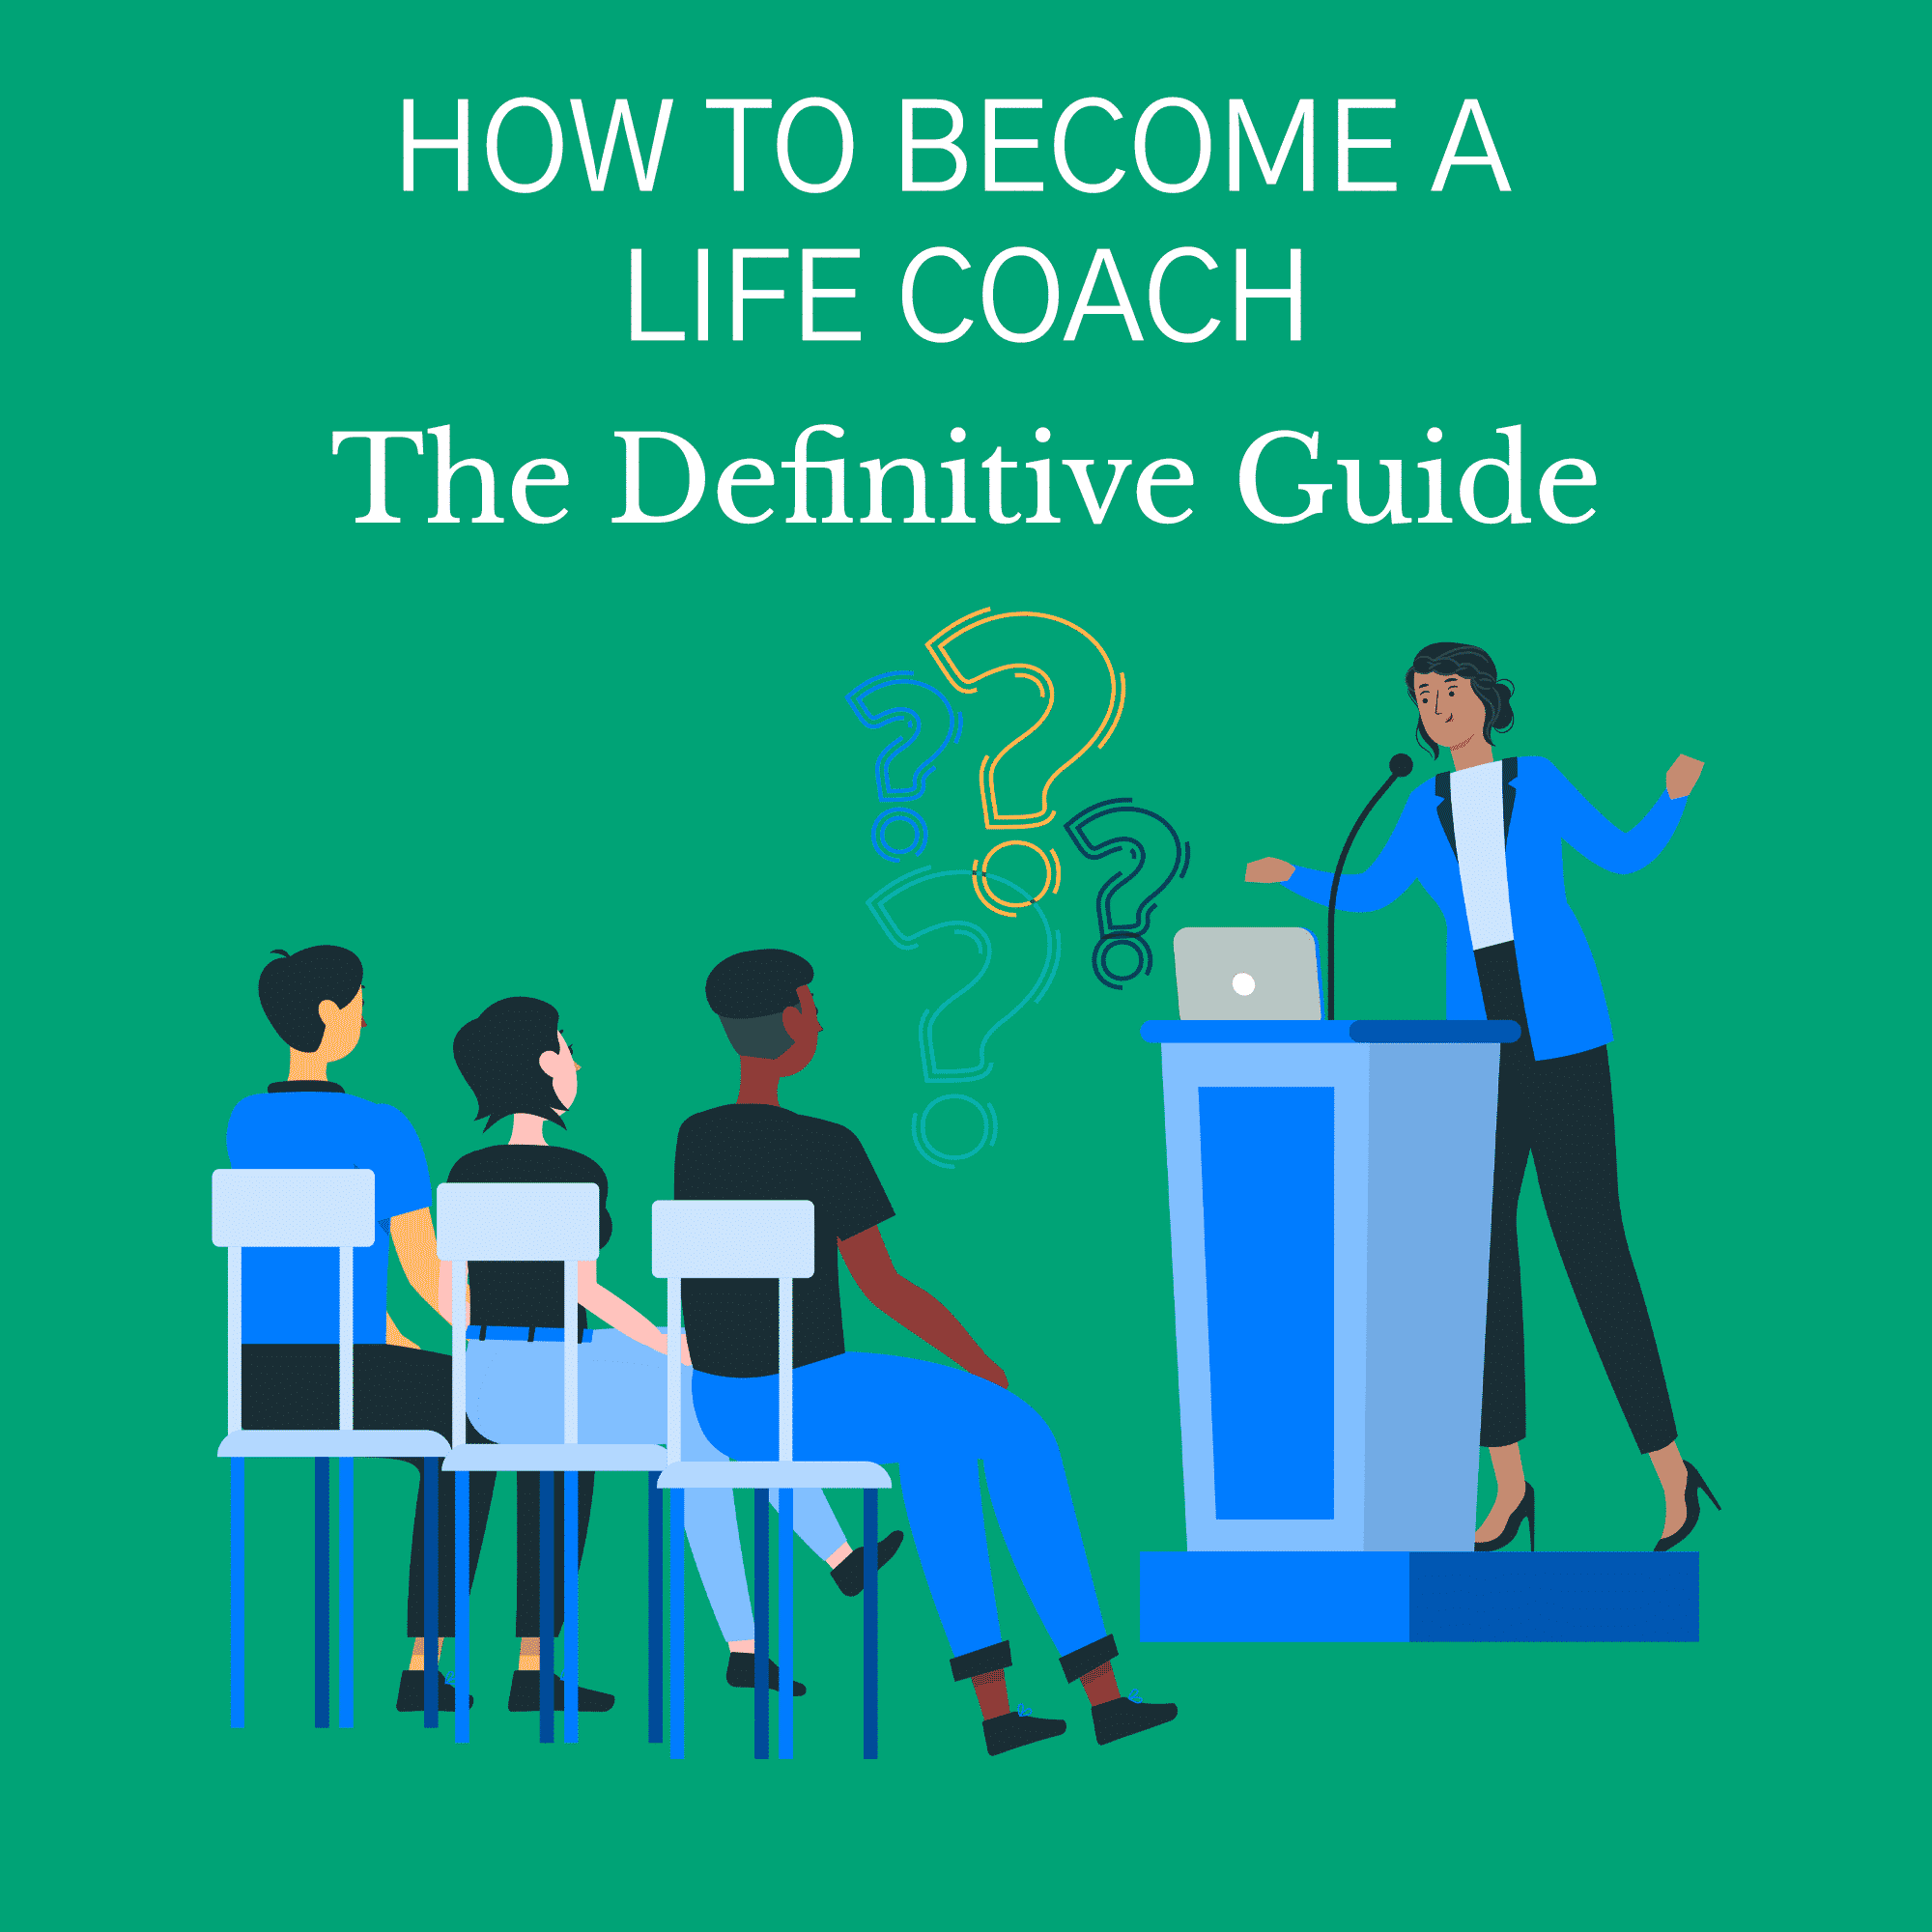 How To Become a Life Coach: The Ultimate Guide [2021-22]